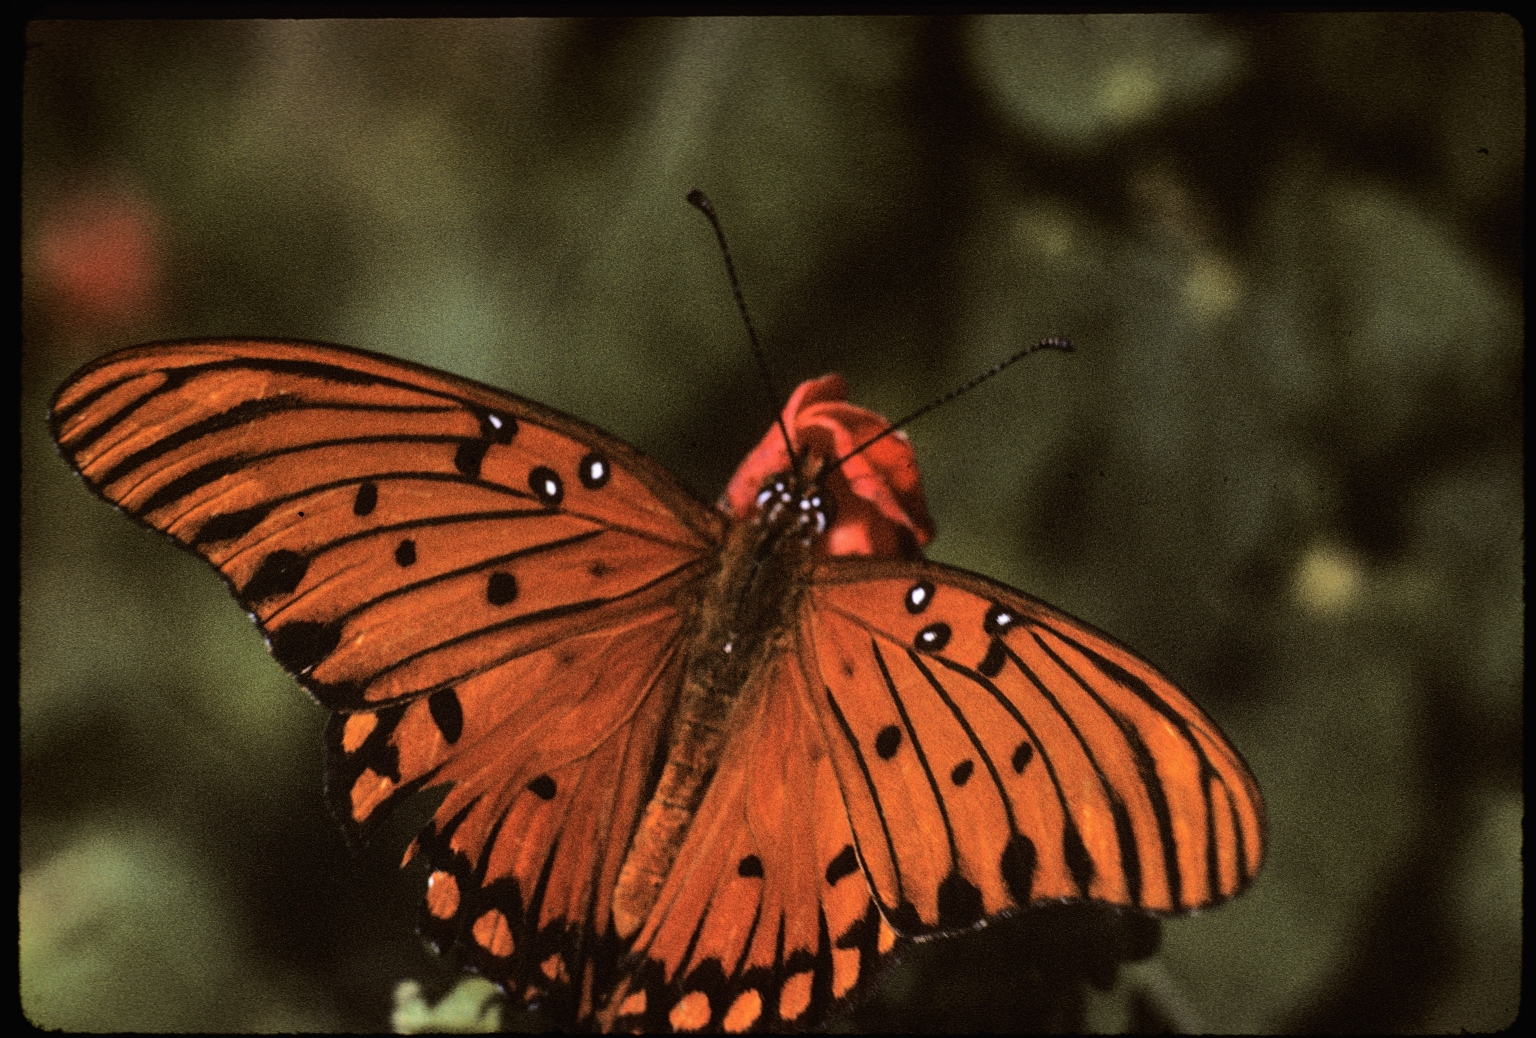 Gulf Fritillary butterfly, or Passion butterfly